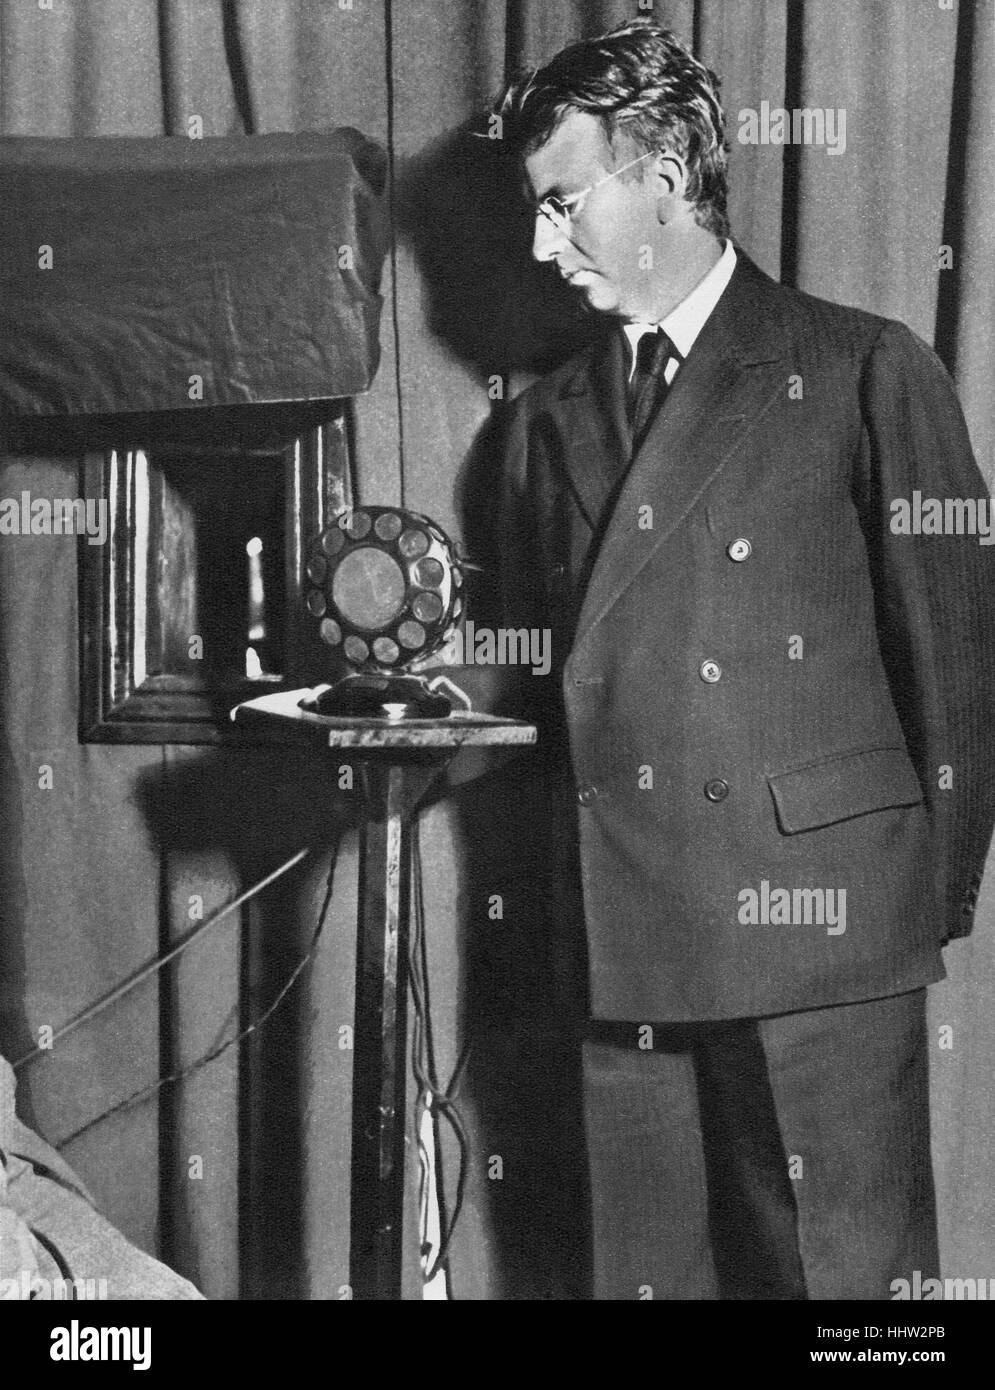 John Logie Baird (14 August 1888 – 14 June 1946), Scottish engineer